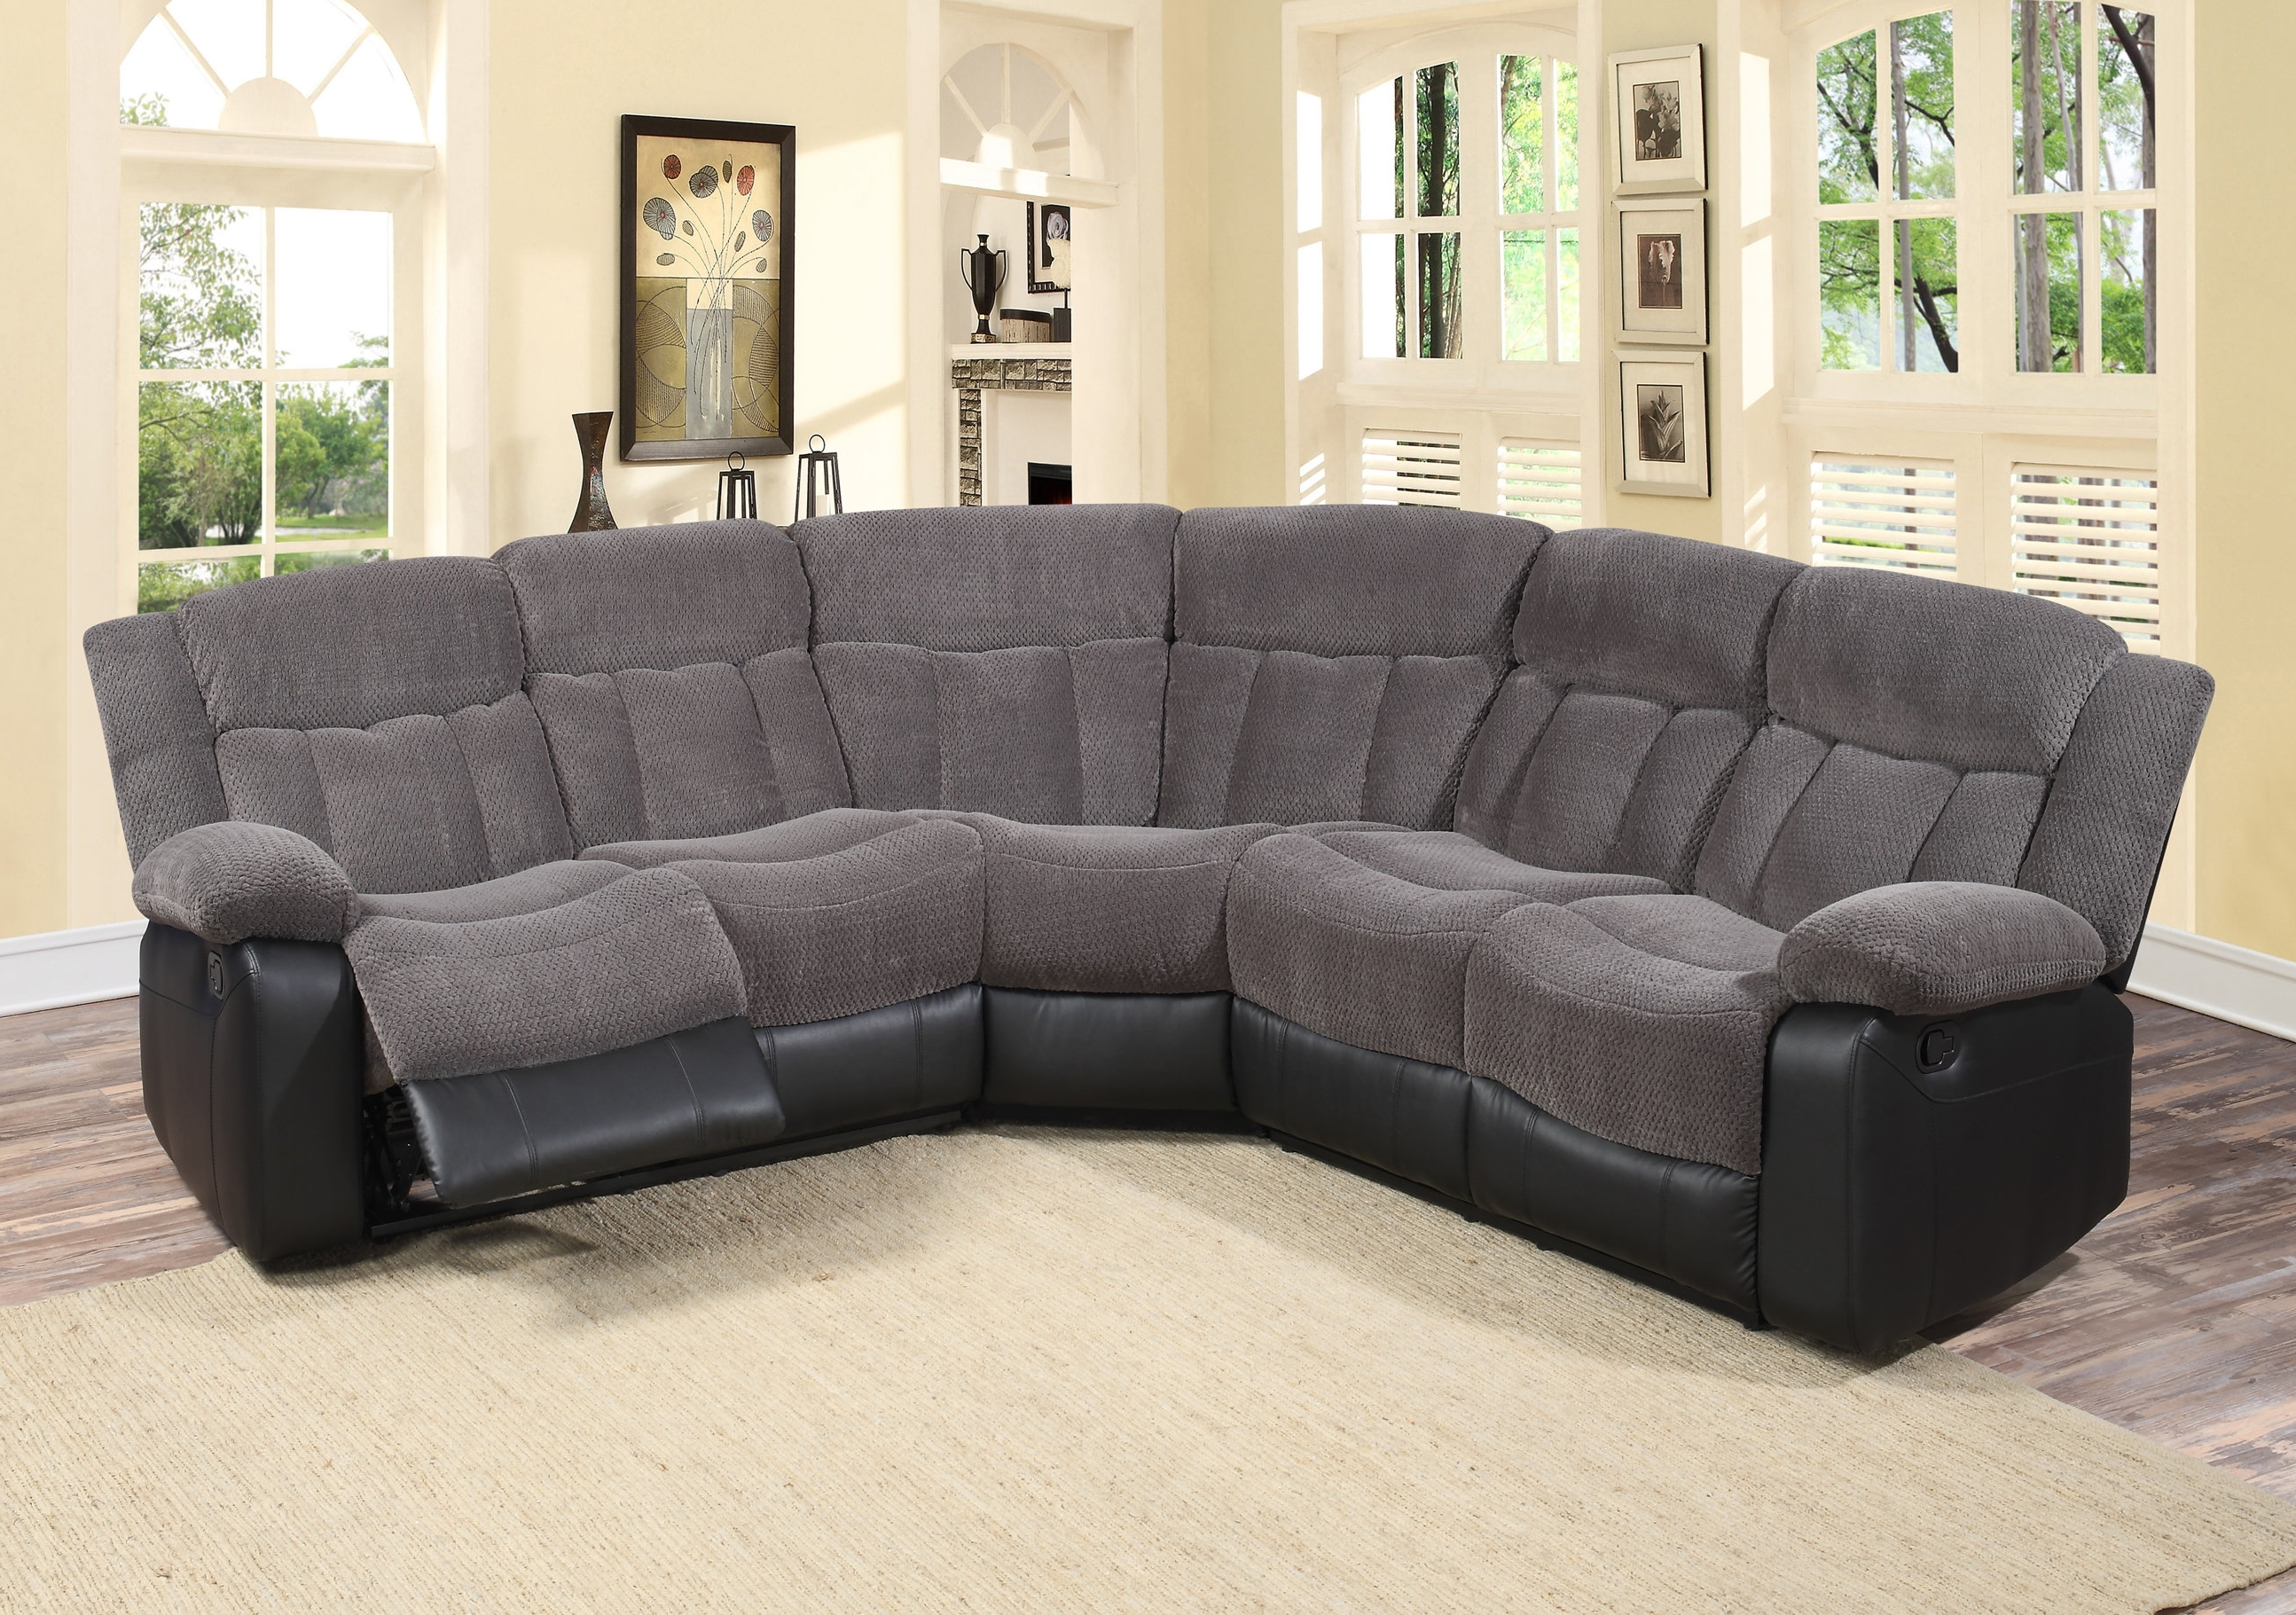 Popular Reclining Sectionals You'll Love (View 8 of 20)